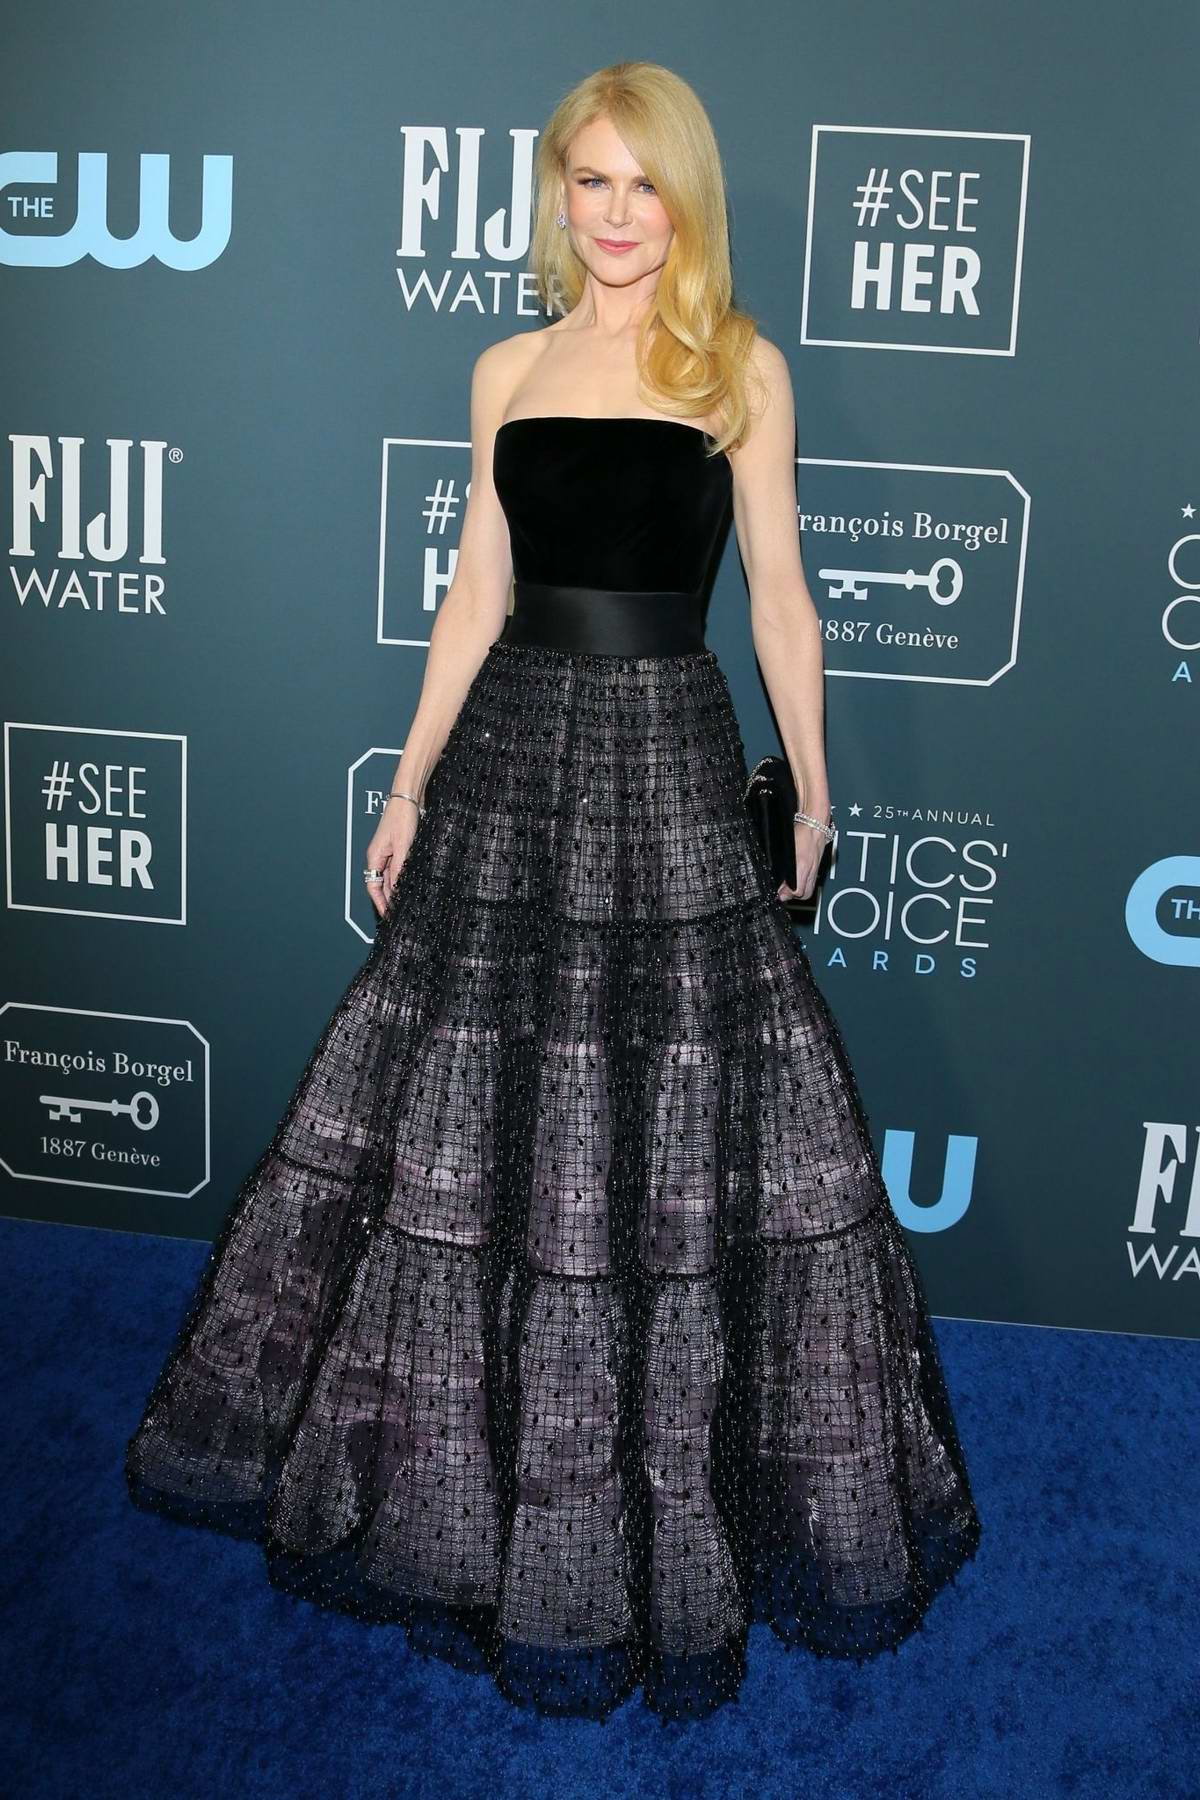 Nicole Kidman attends the 25th Annual Critics' Choice Awards at Barker Hangar in Santa Monica, California